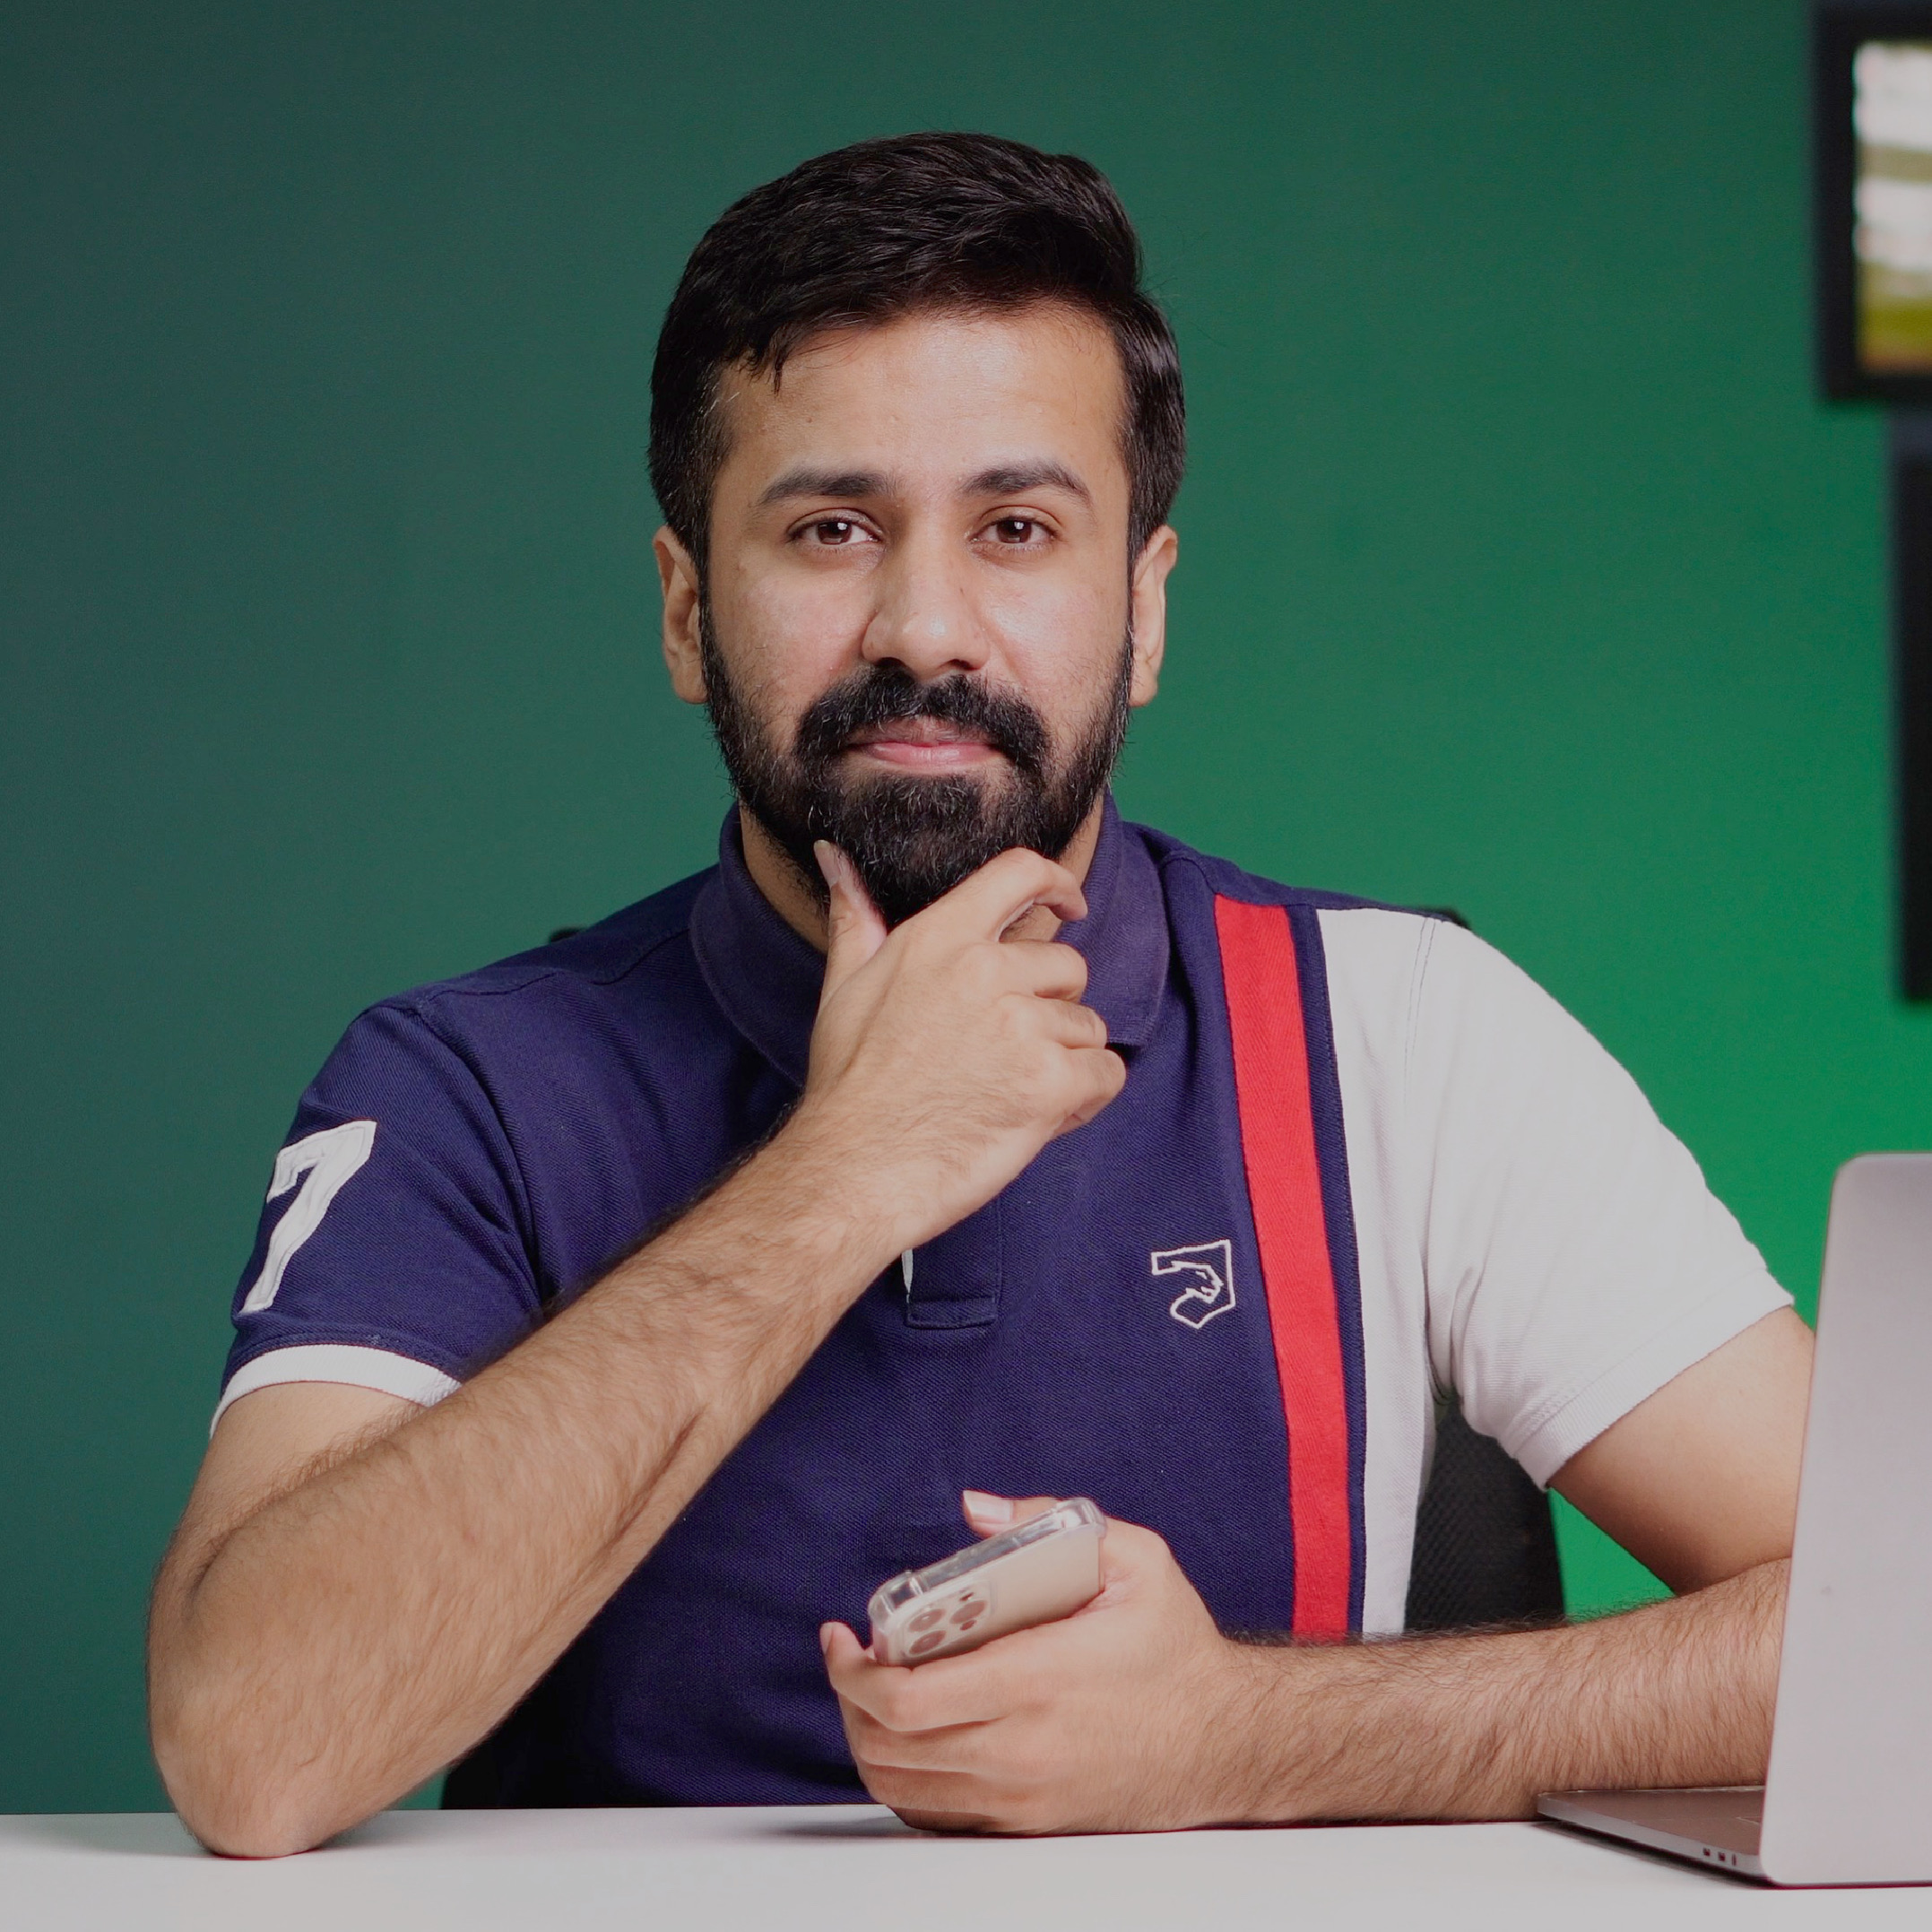 Tayyab Fayyaz: How He is getting fame in the internet world very quickly?